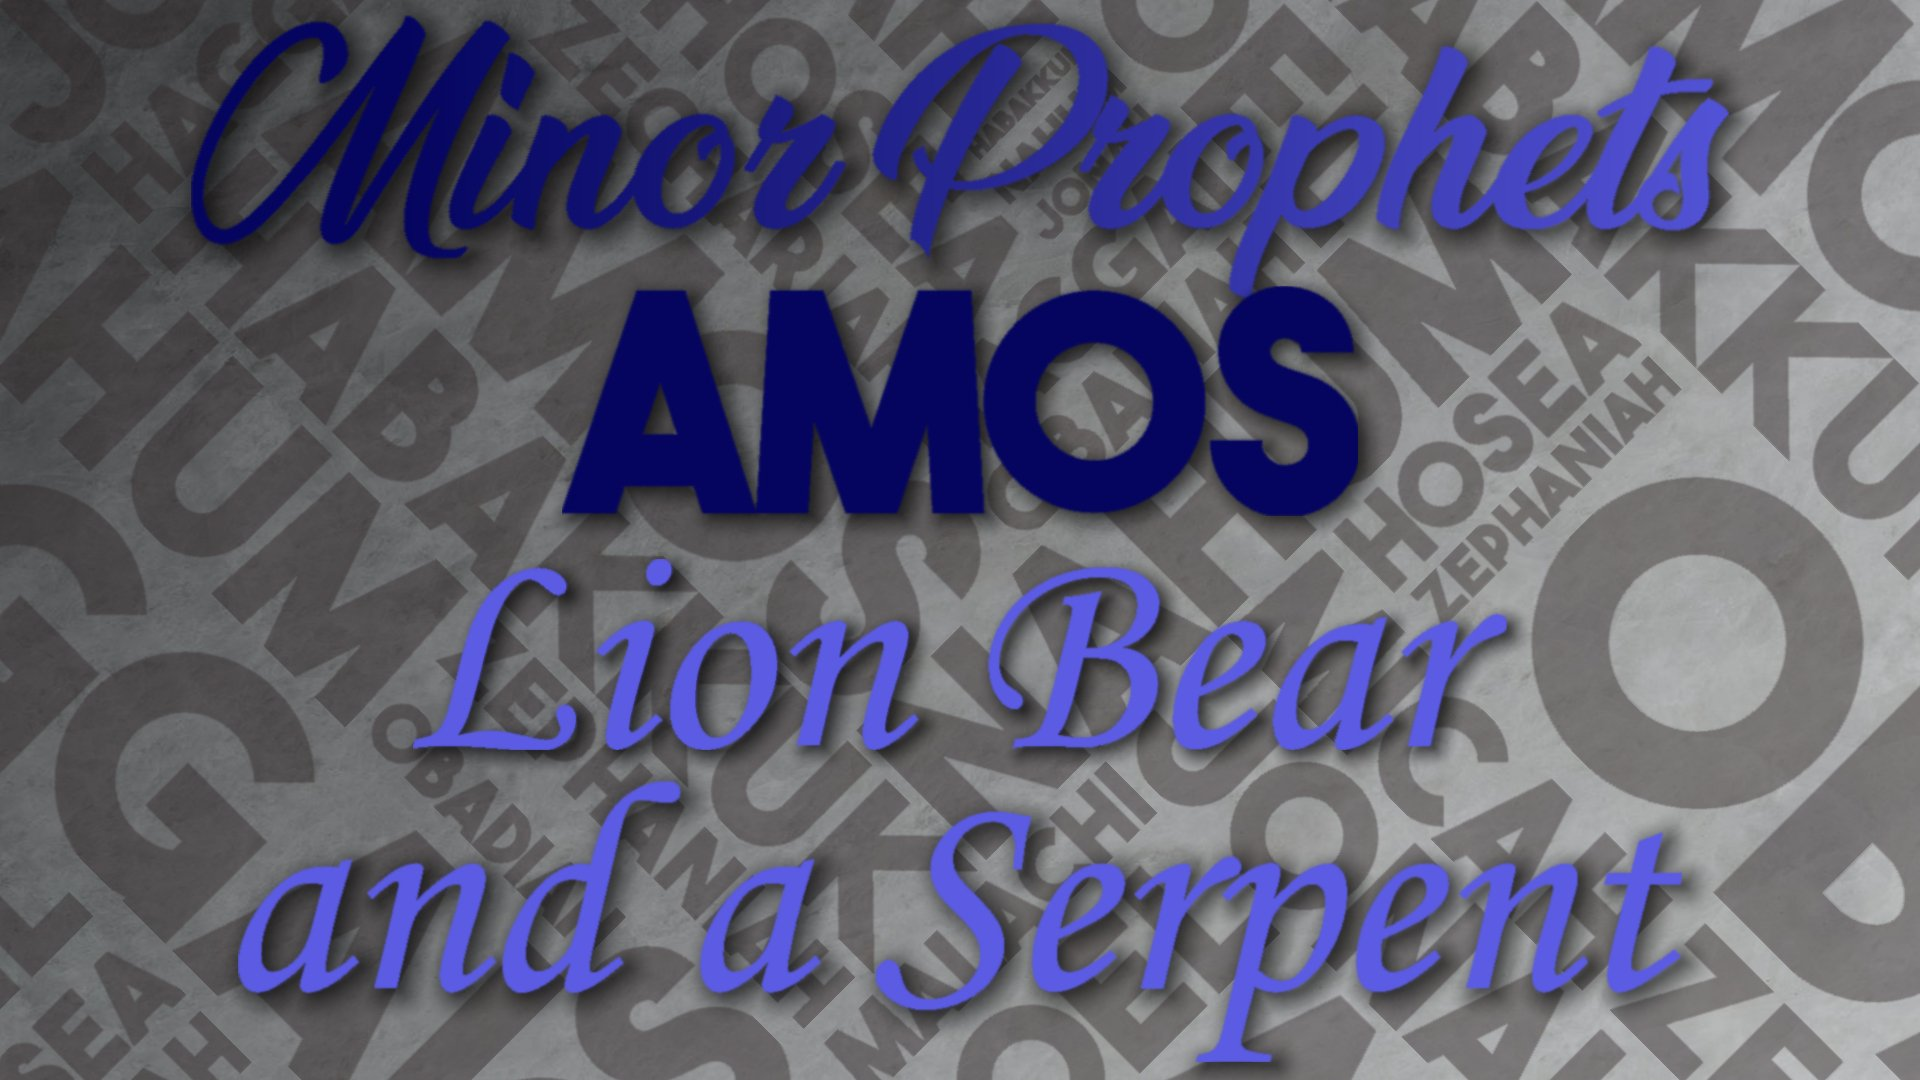 10 Lions, Bear, and a Serpant